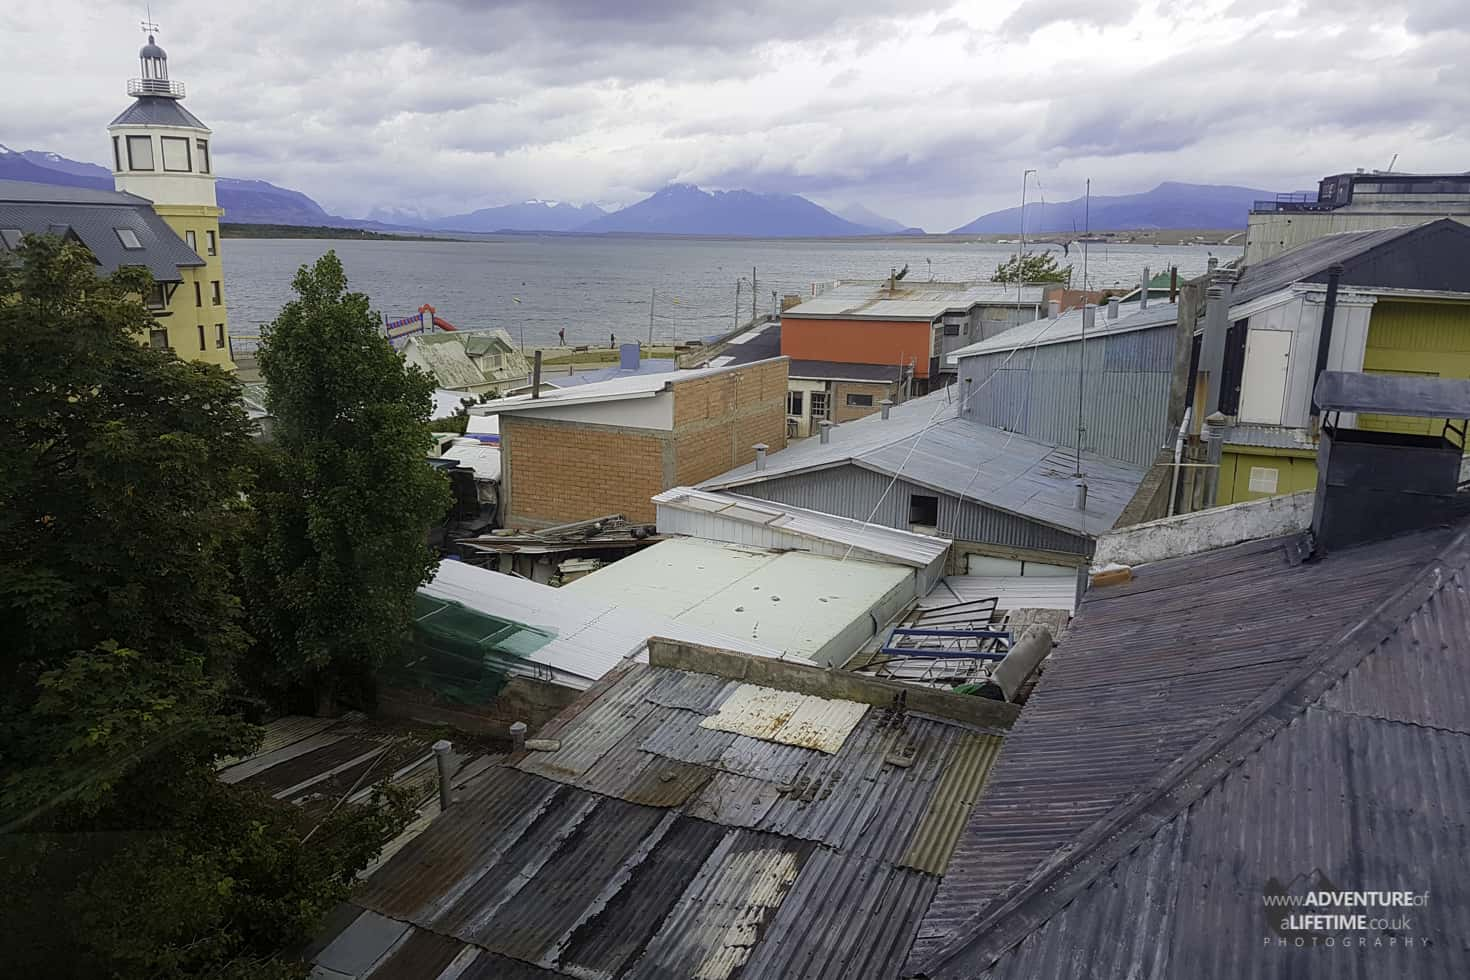 Puerto Natales tin roofs, lakes and mountains